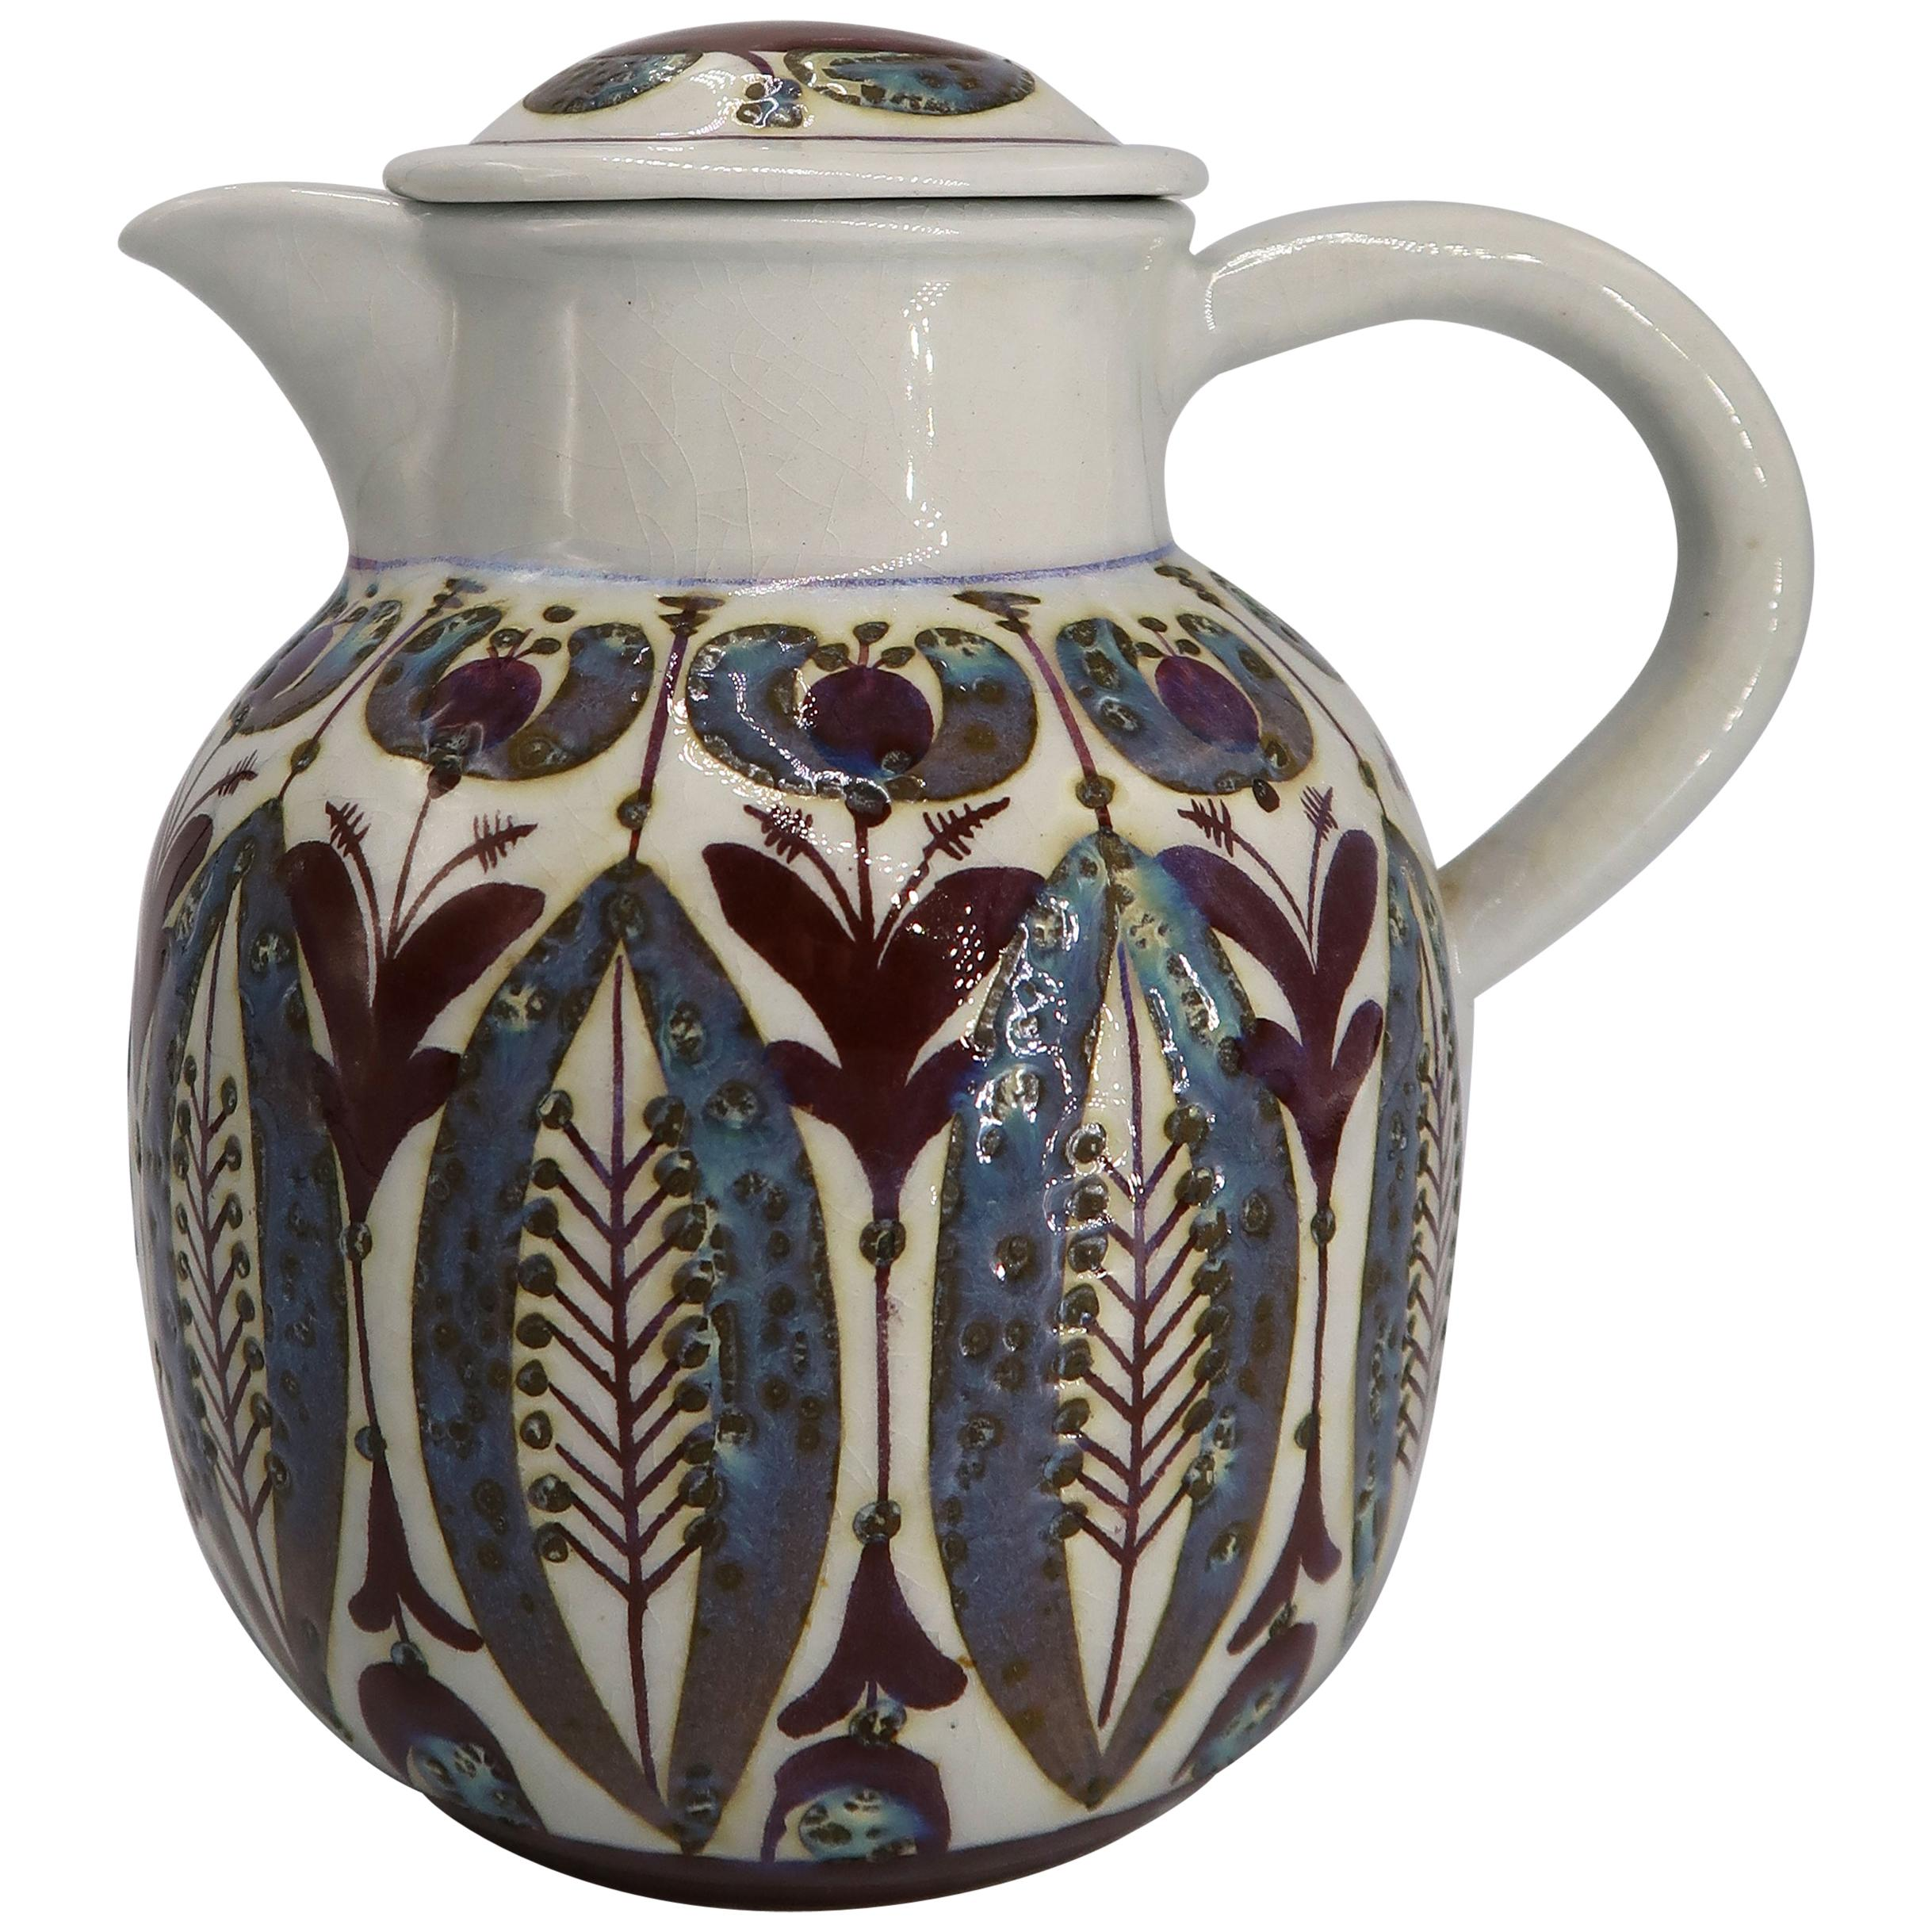 Royal Copenhagen Aluminia Faience Pitcher by Berte Jessen, 1960s